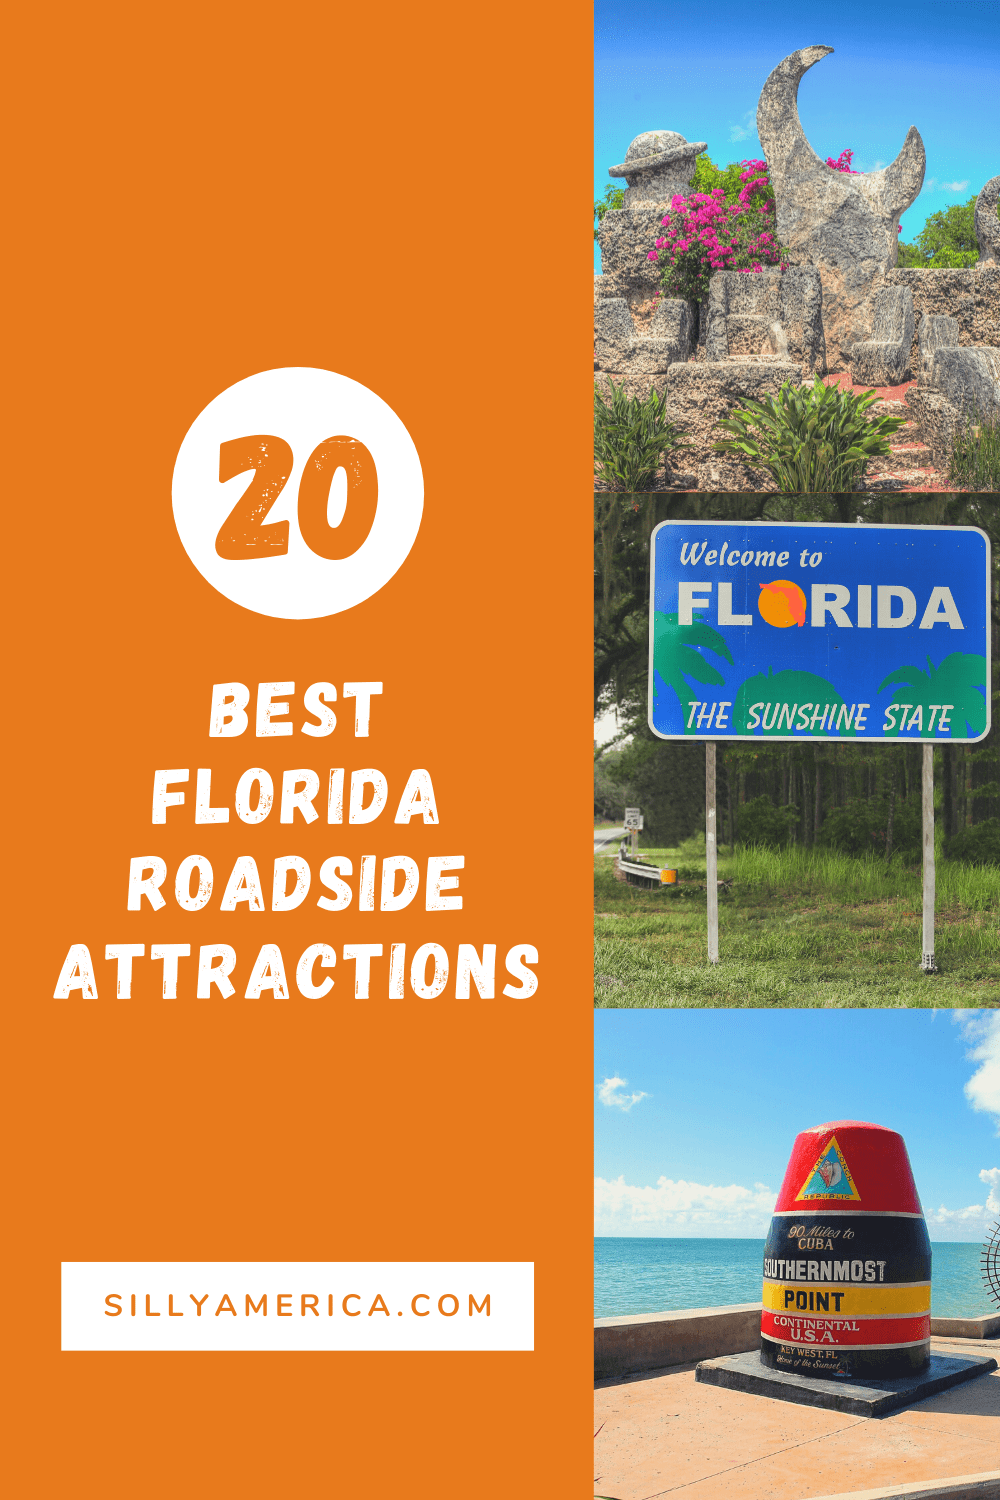 The best Florida roadside attractions to visit on a Florida road trip. Add these roadside oddities to your travel bucket list, itinerary, or route map! Weird roadside attractions and fun road trip stops for kids and adults on their way to Disney World and beyond. #FloridaRoadsideAttractions #FloridaRoadTrip #Floridaroadtripdestinations #Floridaroadtripideas #Floridaroadtripitinerary #ThingstoDoinFlorida #Floridatraveldestinations #RoadsideAttraction #RoadsideAttraction #RoadTrip